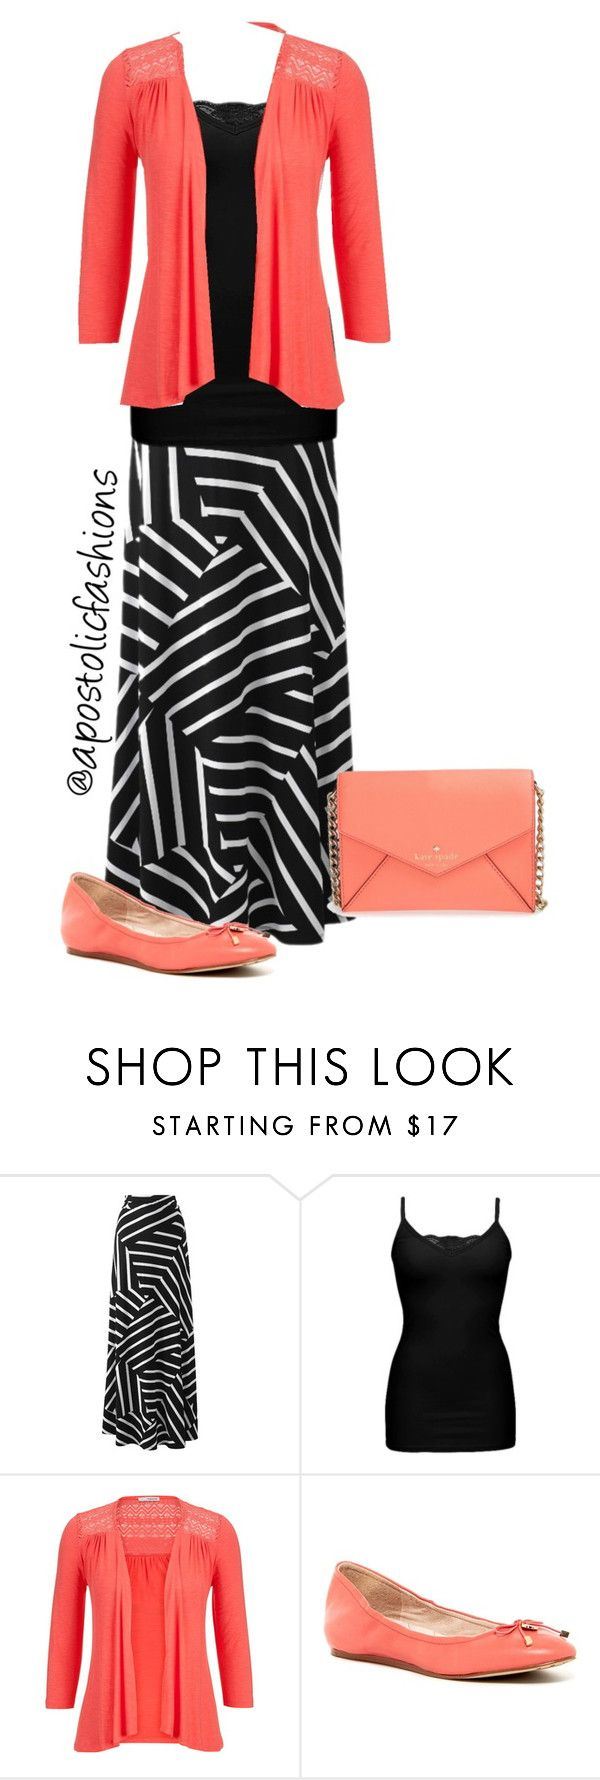 """Apostolic Fashions #866"" by apostolicfashions on Polyvore featuring BKE, maurices and Kate Spade"